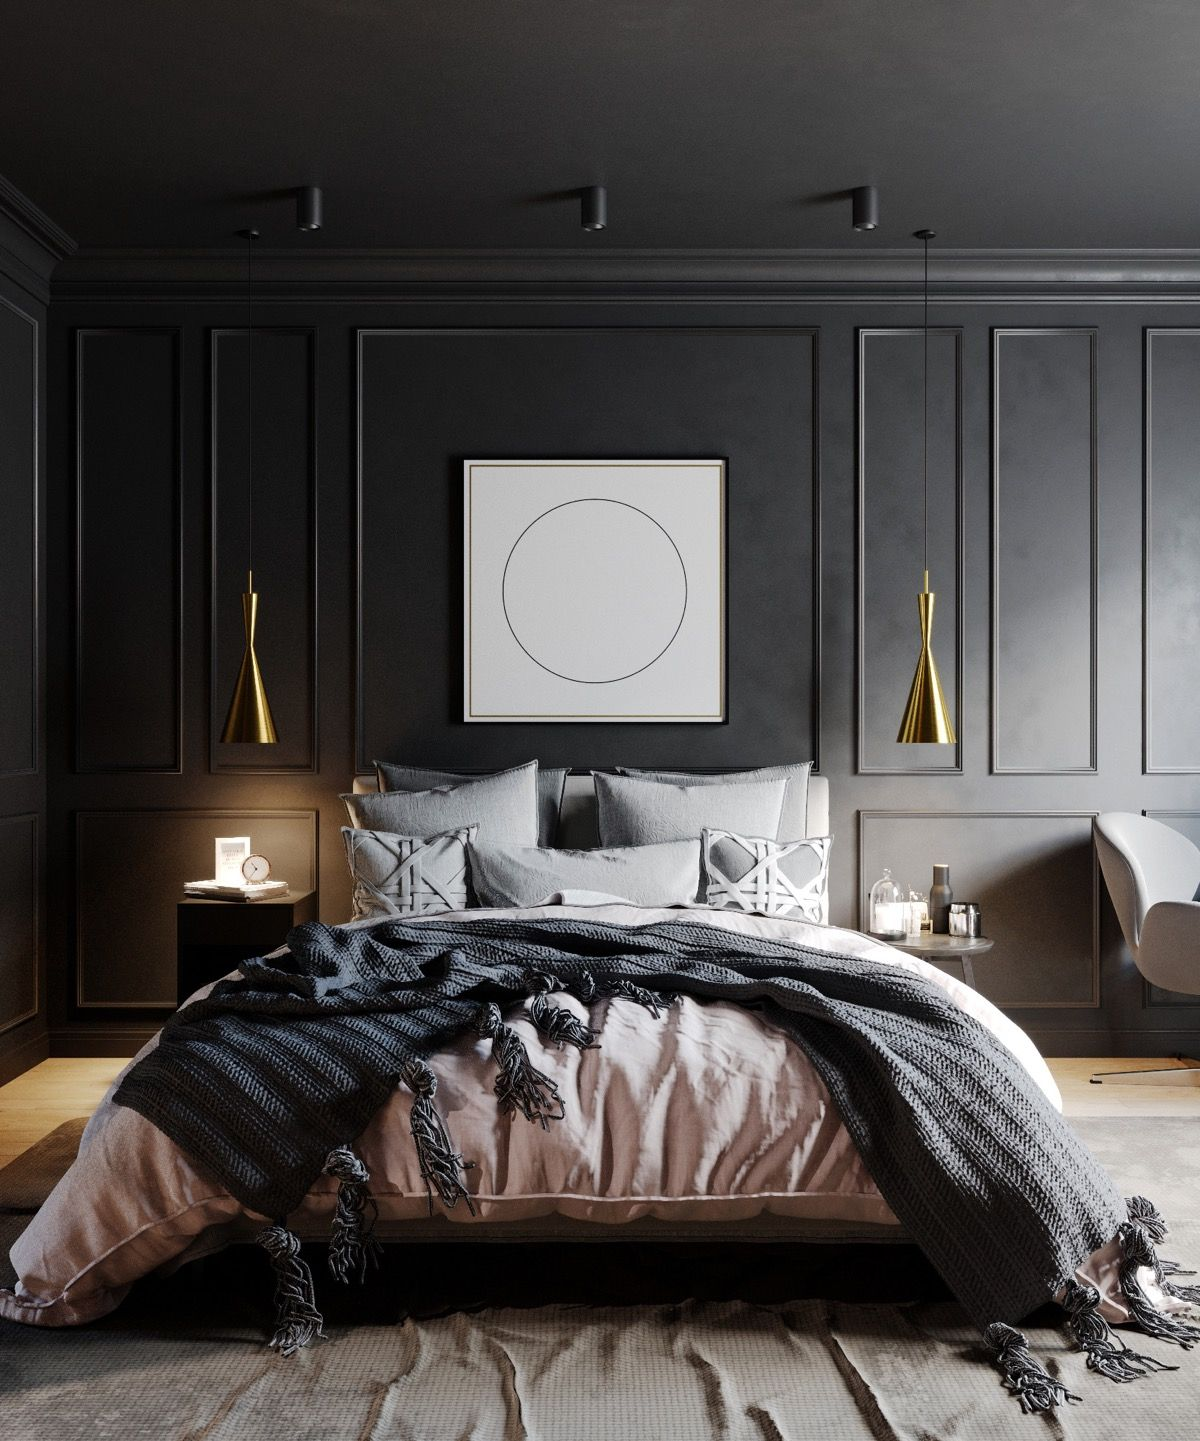 Schlafzimmer Schwarze Möbel 51 Beautiful Black Bedrooms With Images, Tips & Accessories To Help You Design Yours | Black Bedroom Decor, Black Bedroom Design, Home Decor Bedroom